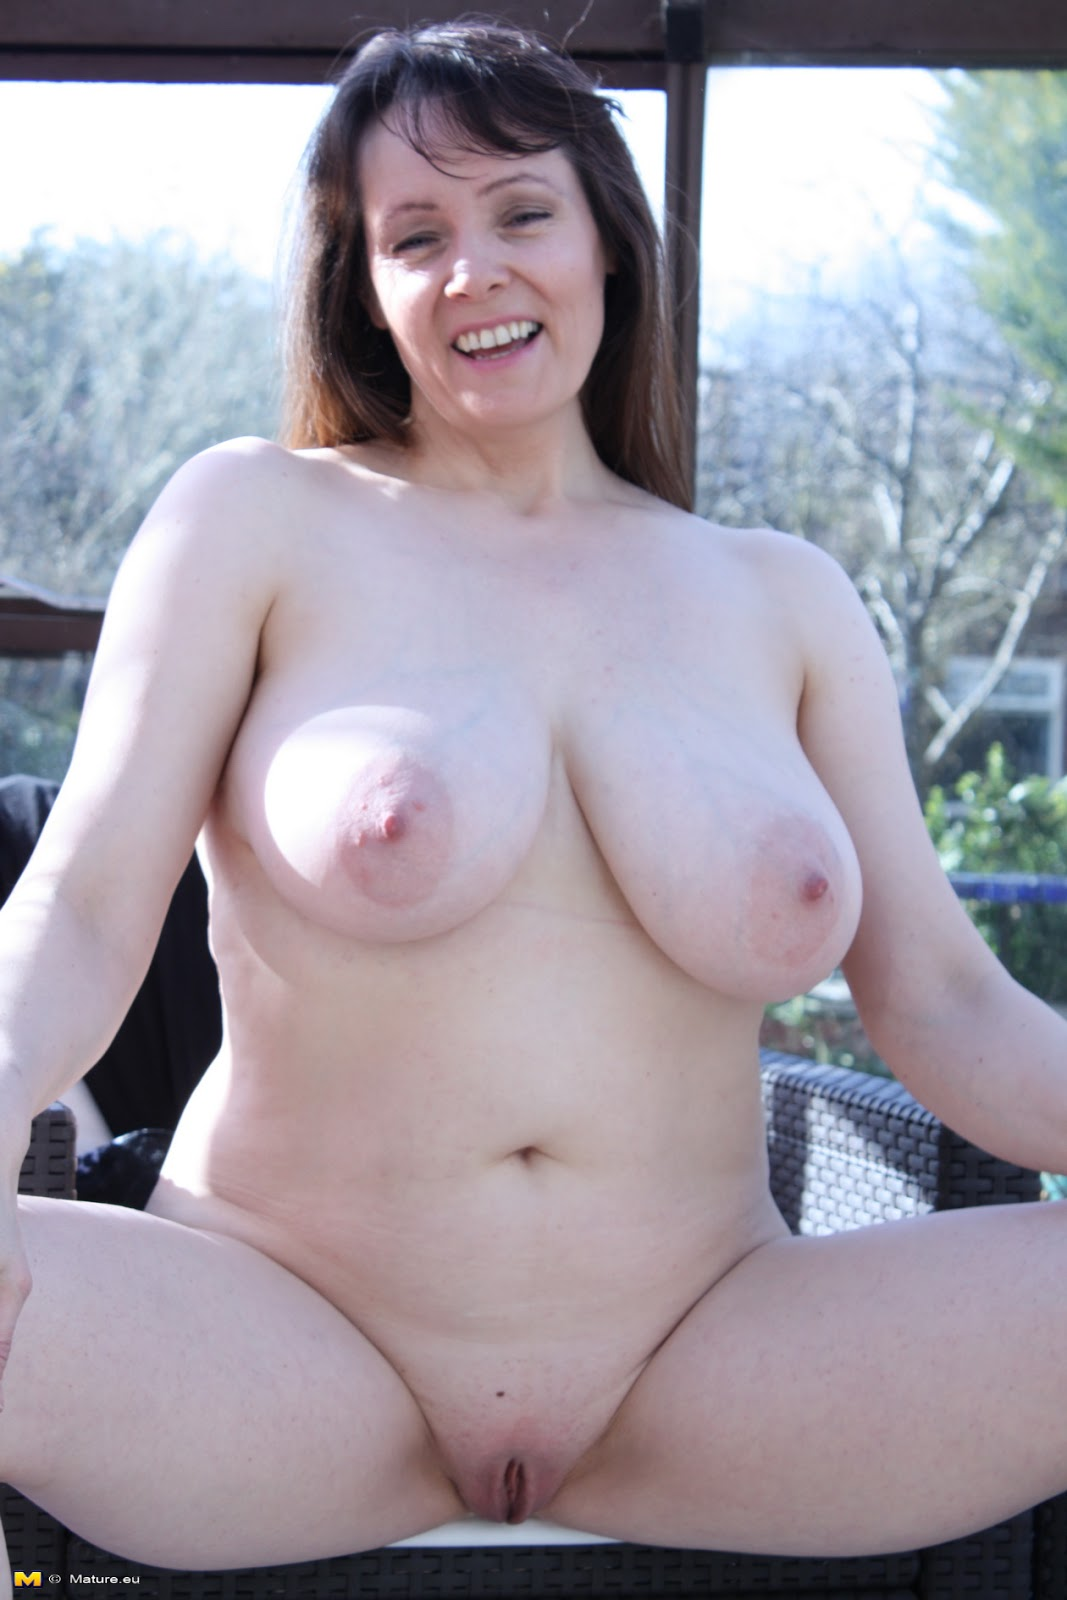 should Z44b 2030 milf religous nut y'all! get